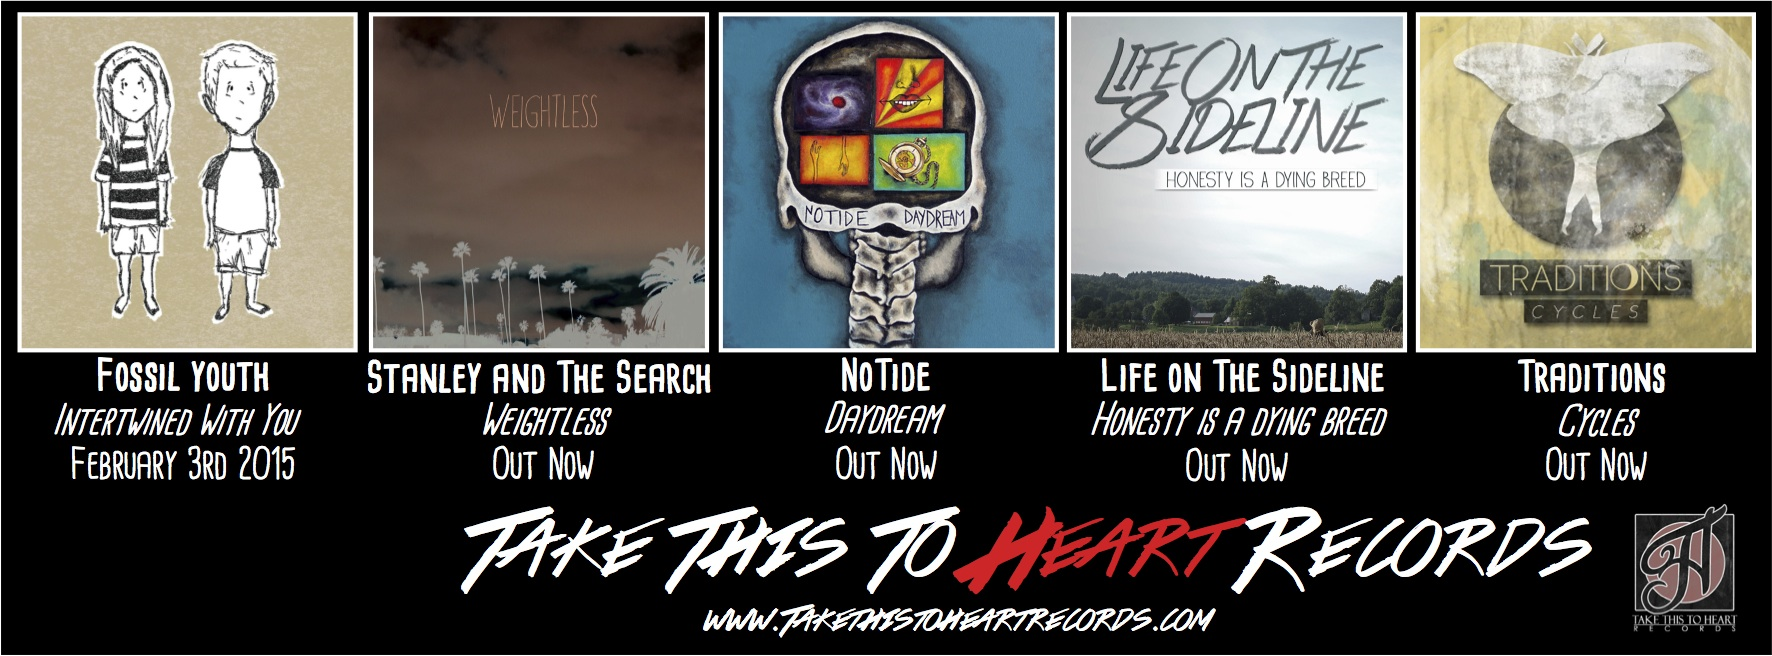 Take This To Heart Records